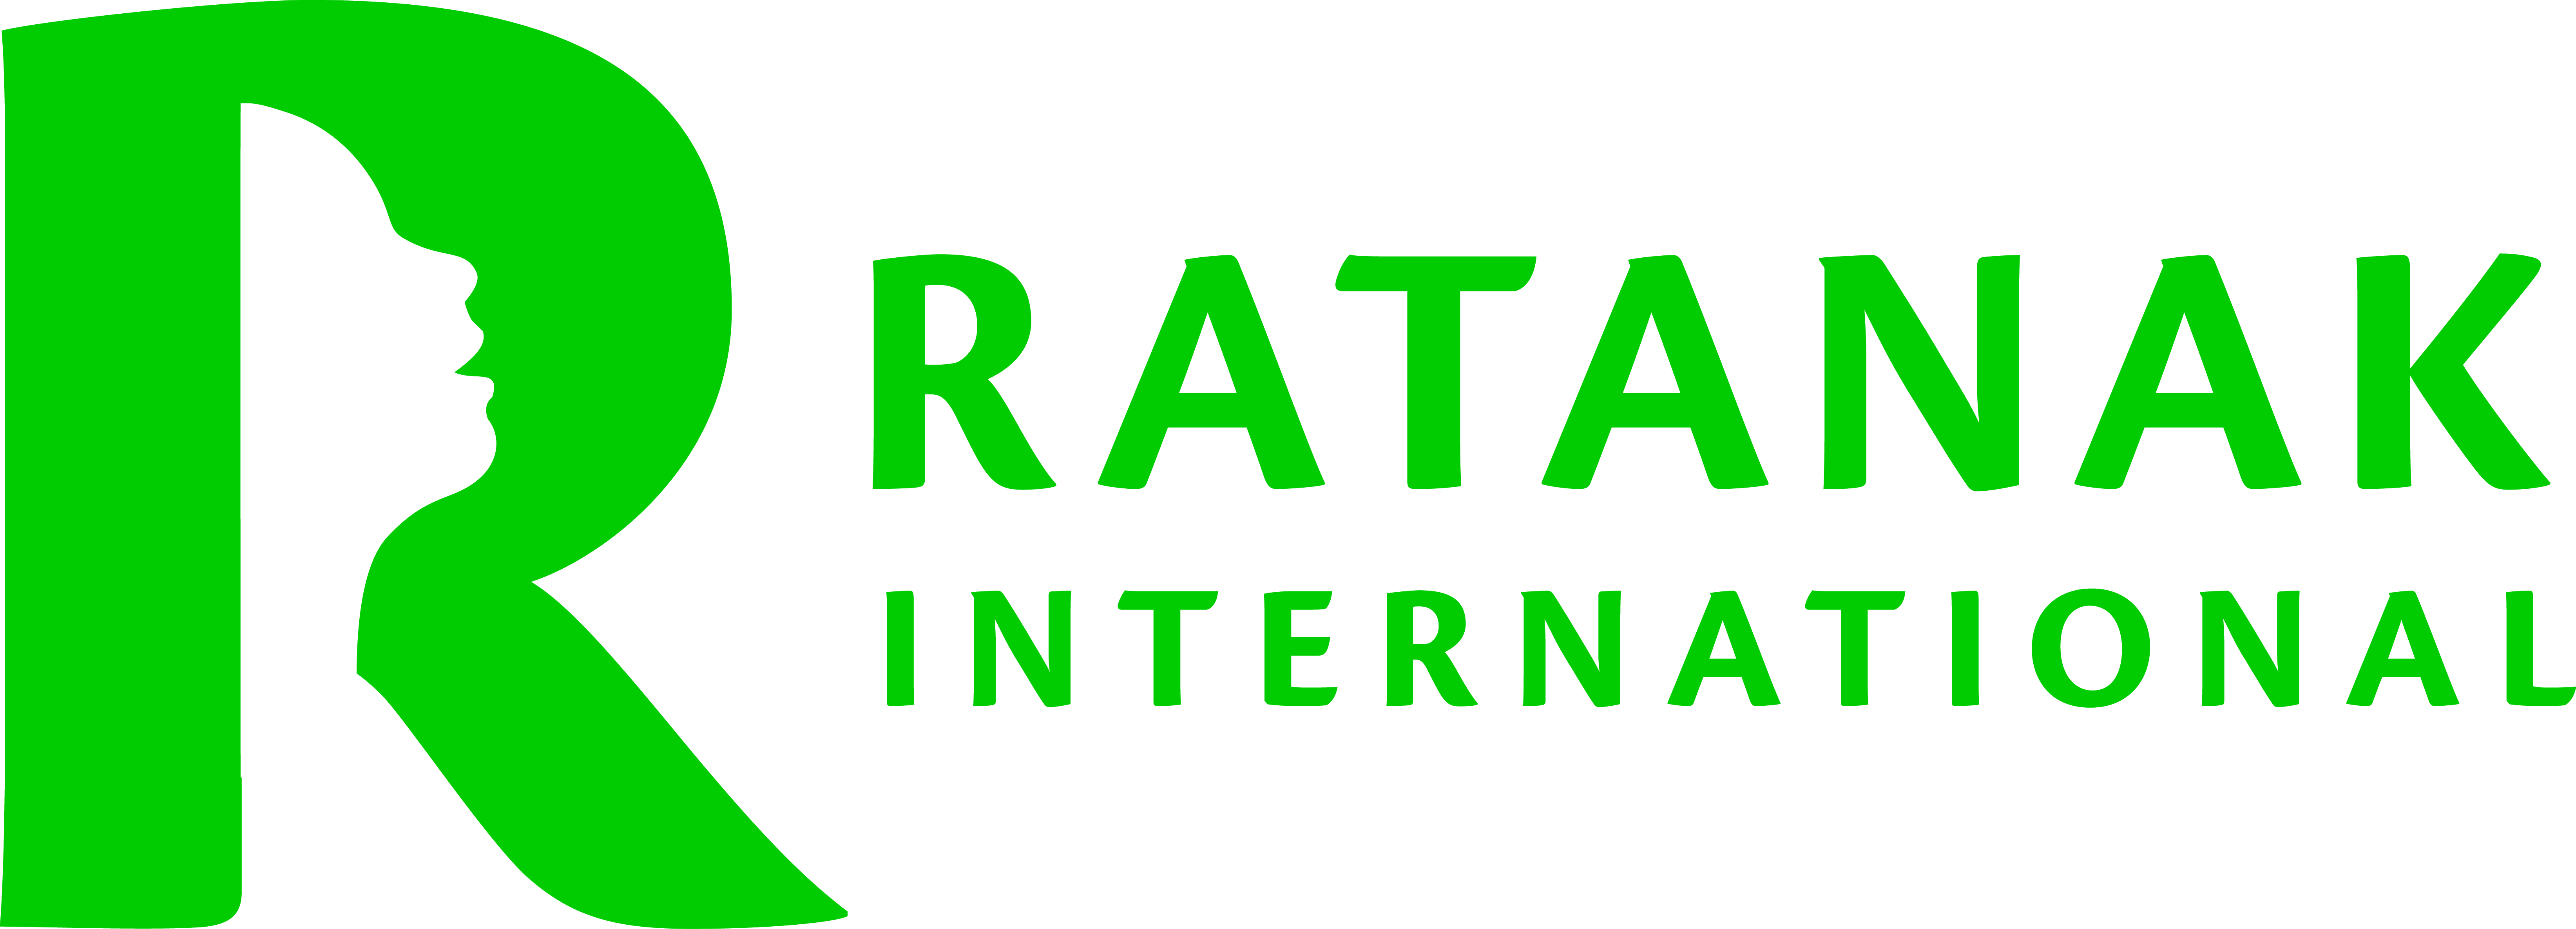 Ratanak international logo